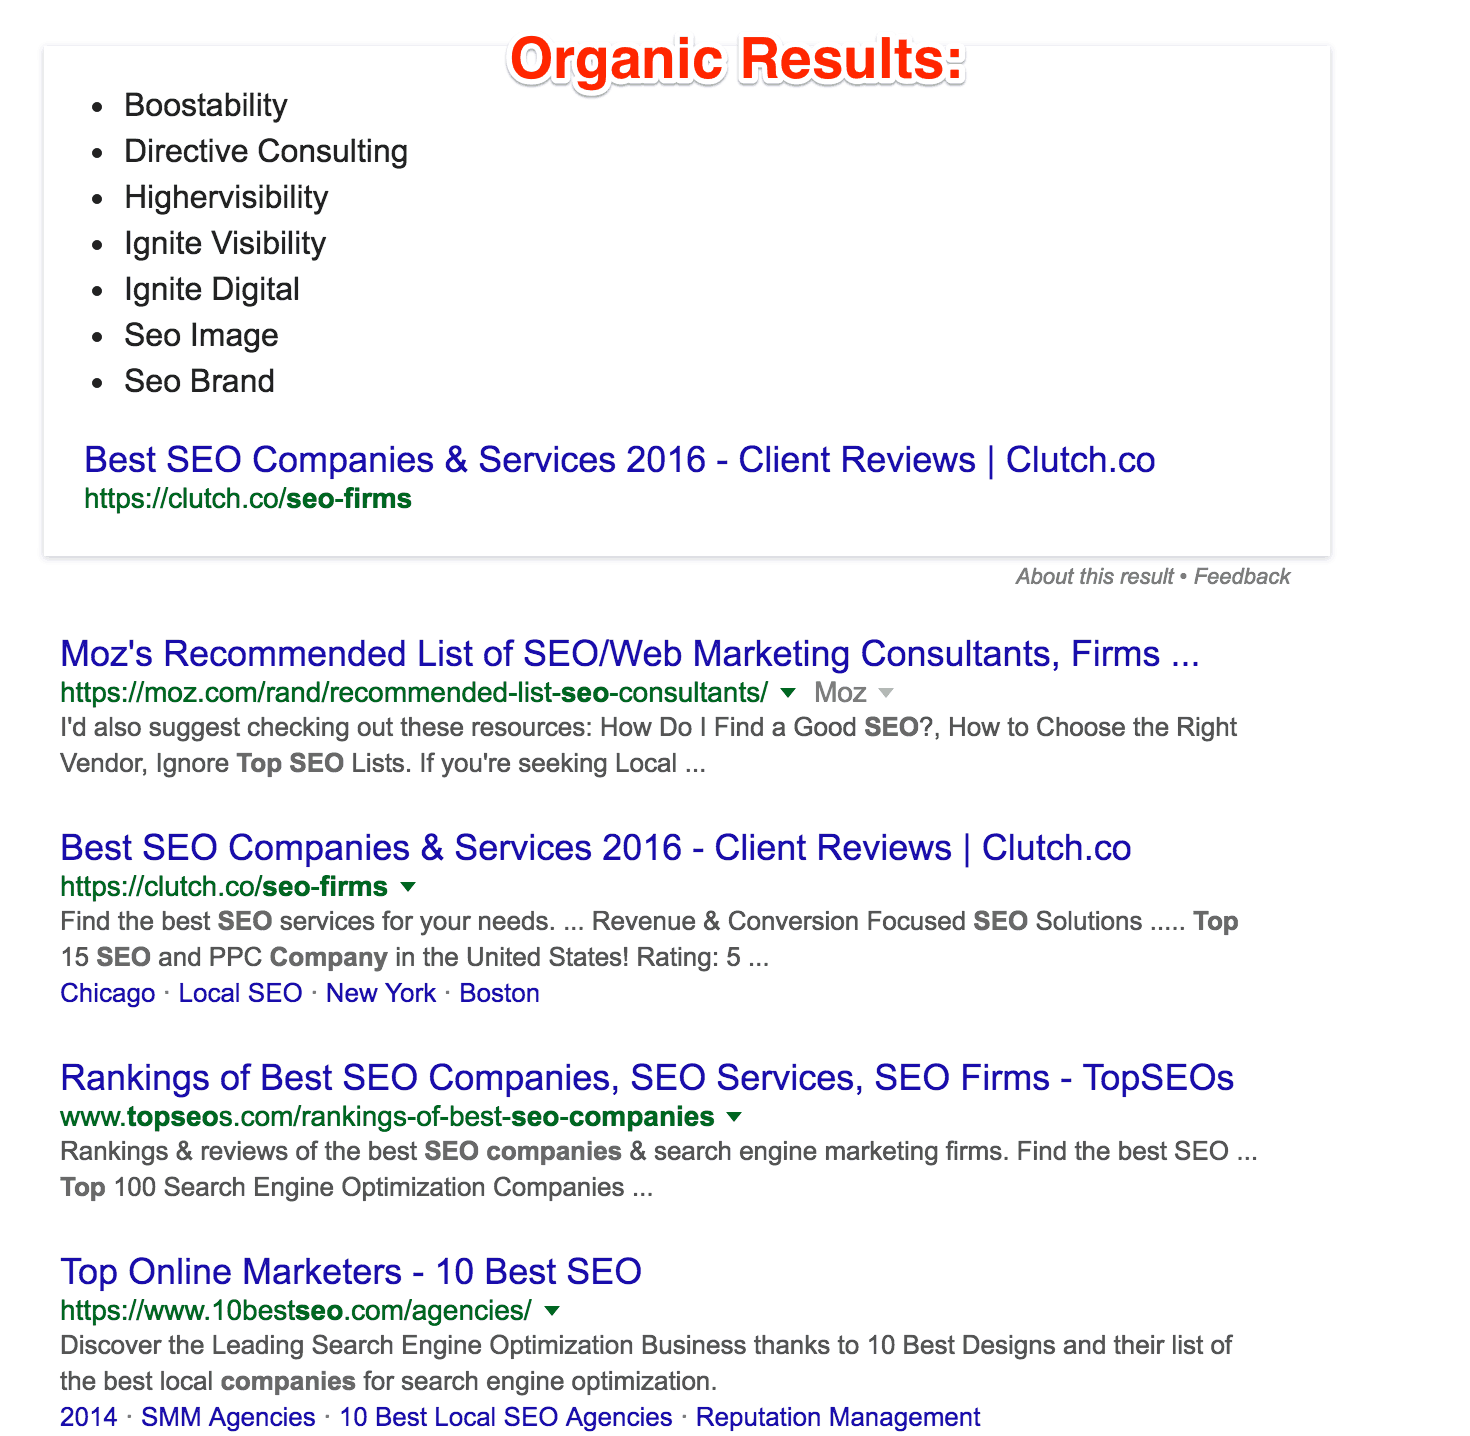 monthly-revenue-organic-results